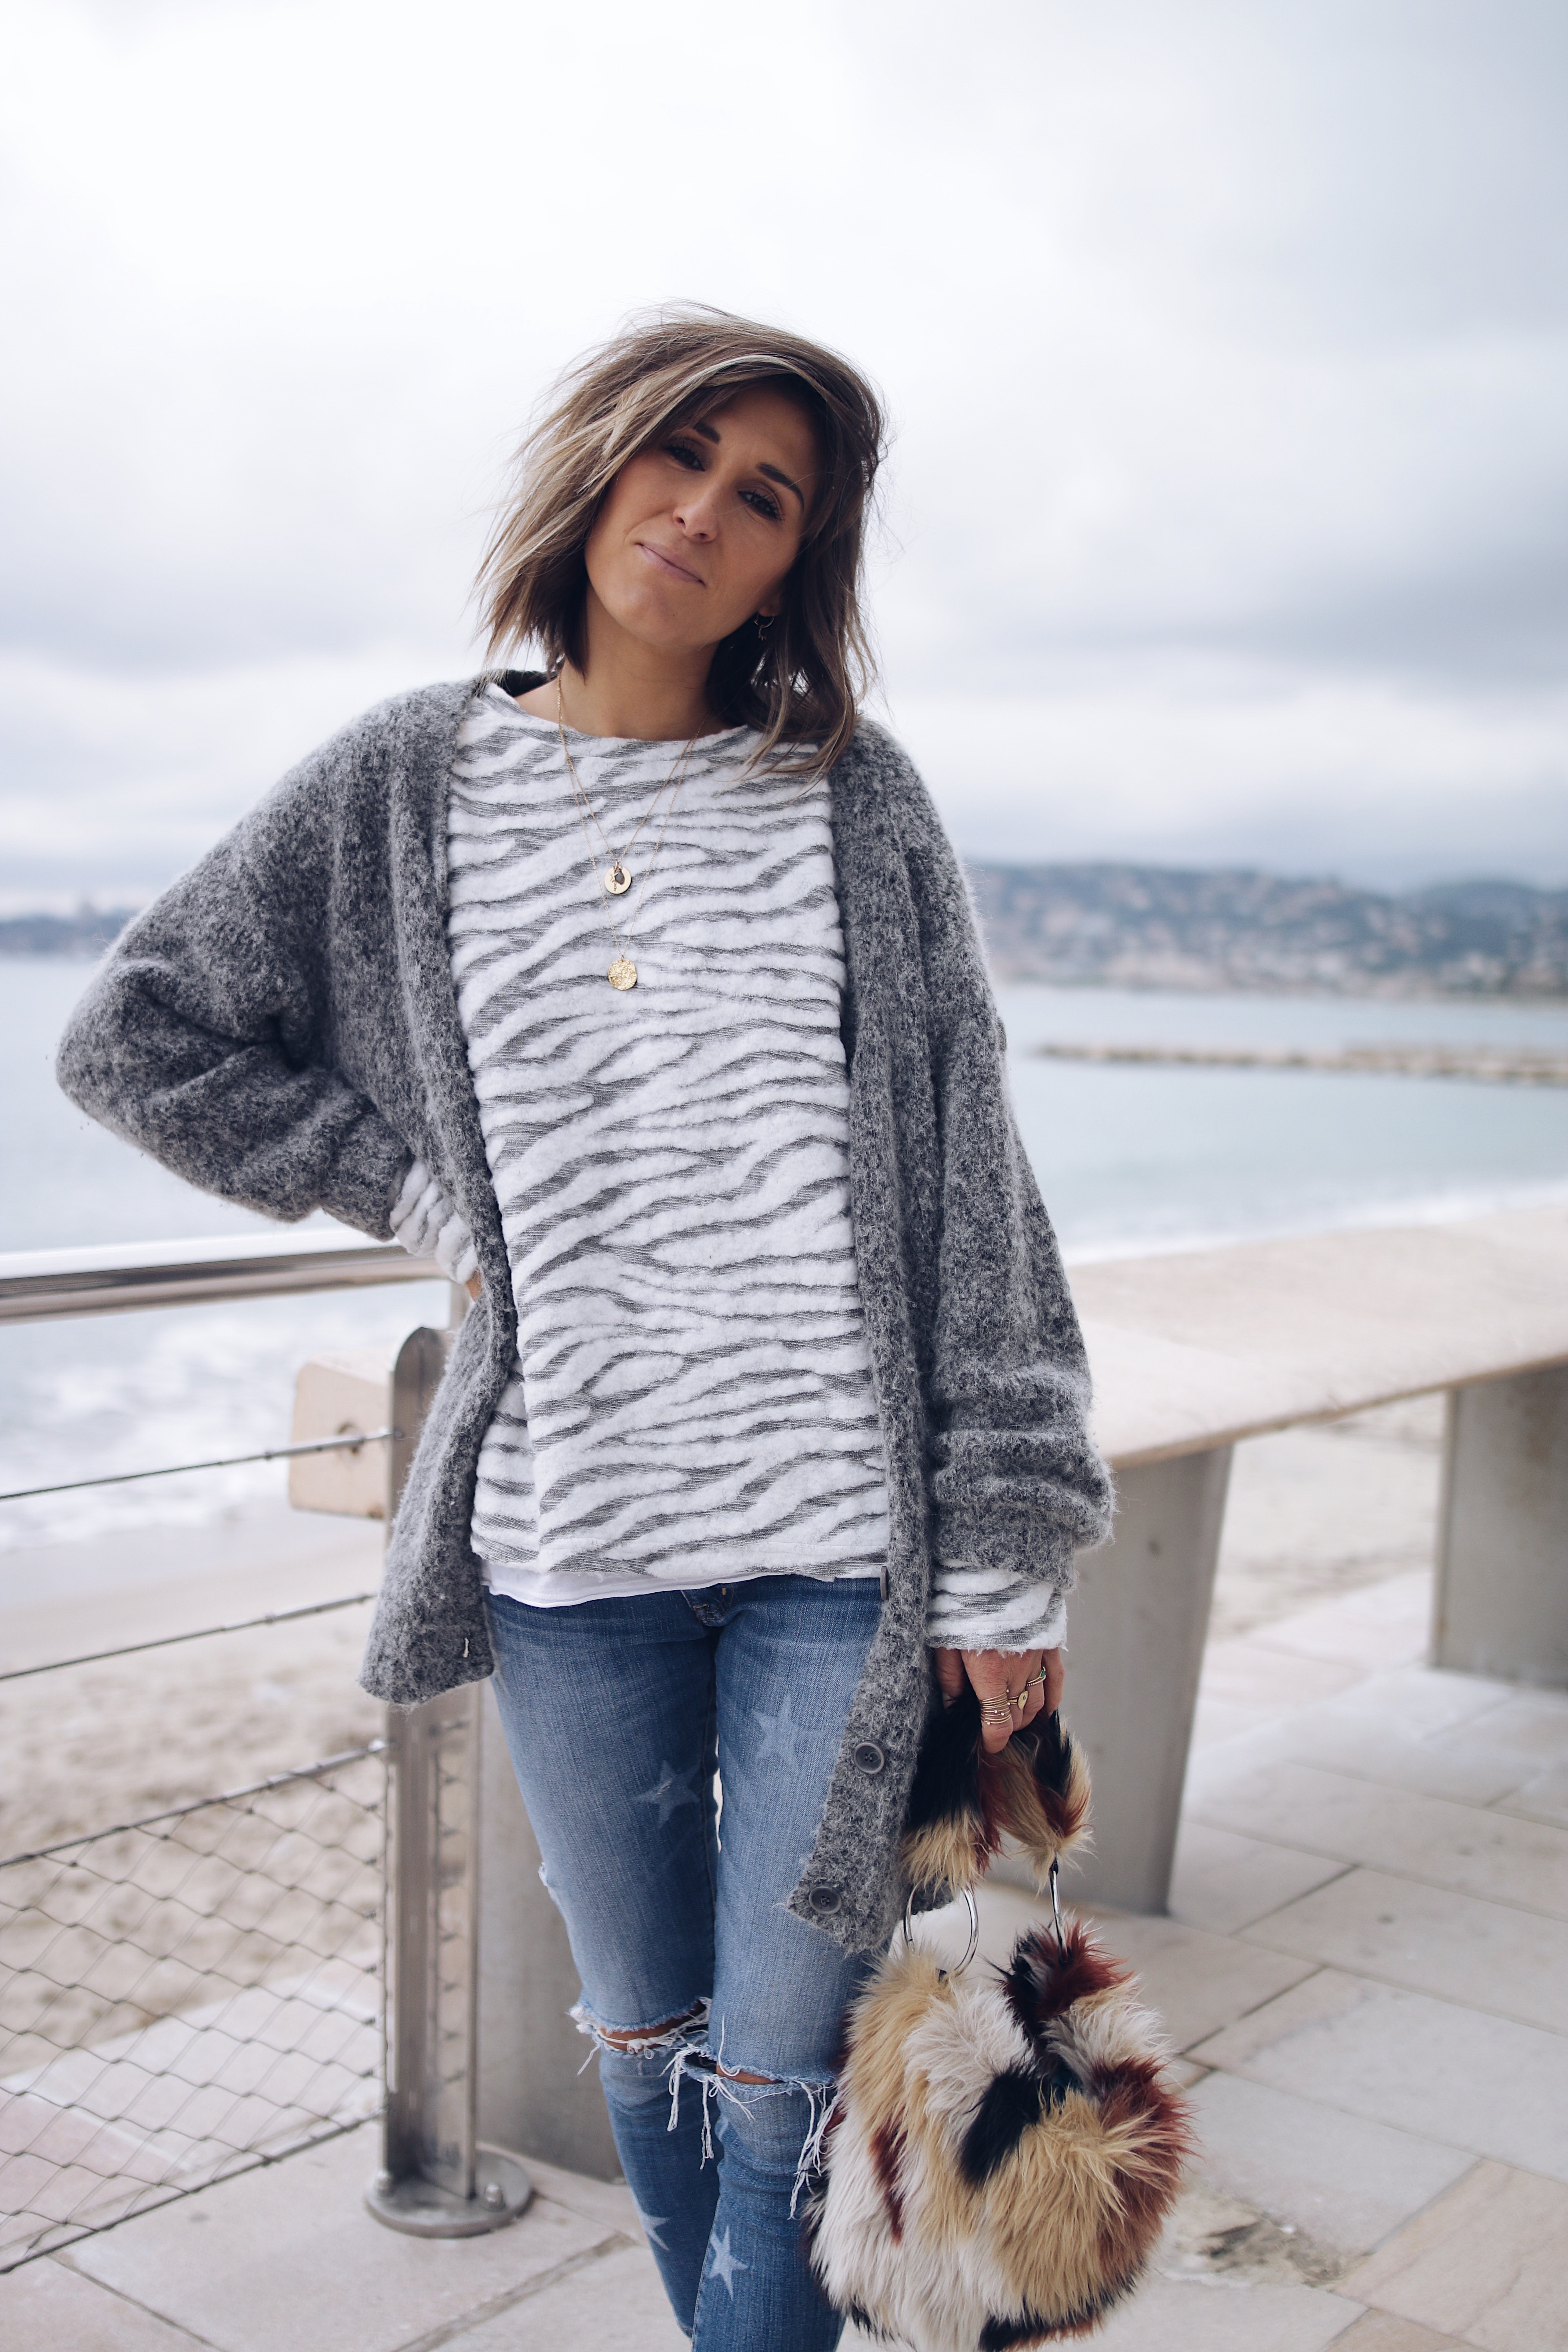 Casual style, denim style, knit lover, knit outfit, knit and denim outfit